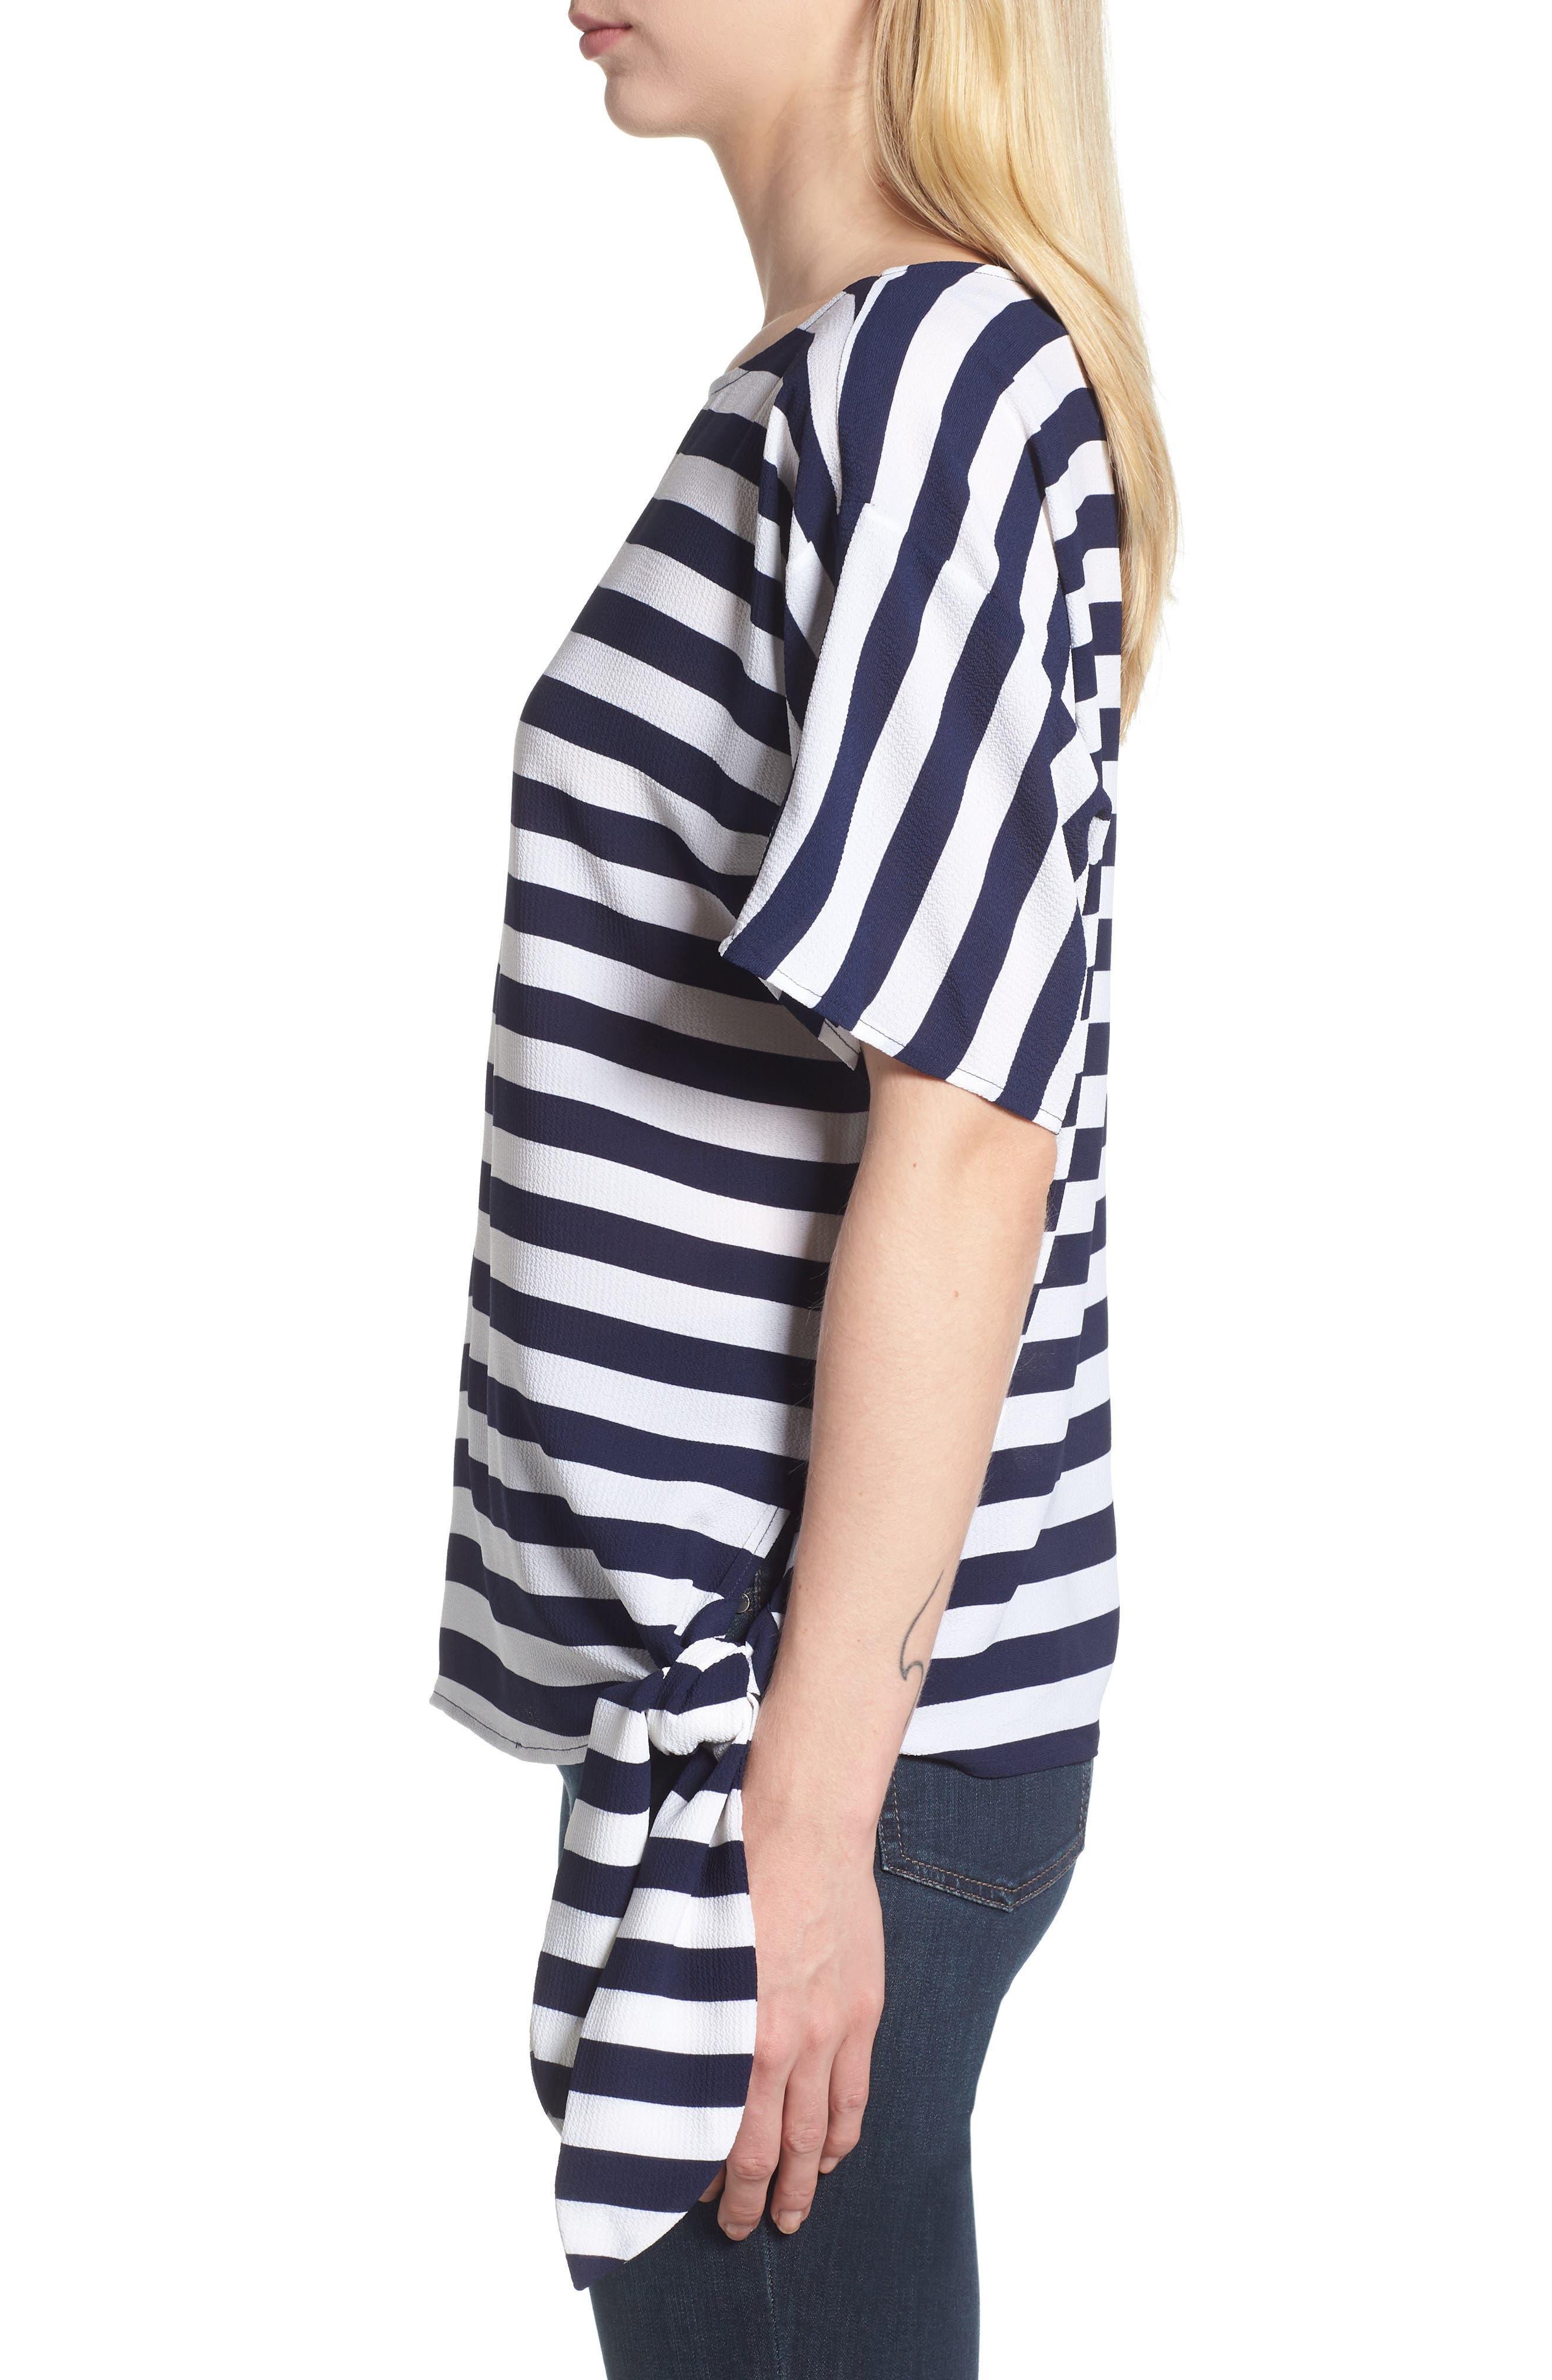 MICHAEL Michael Kors Side Tie Striped Top,                             Alternate thumbnail 3, color,                             True Navy